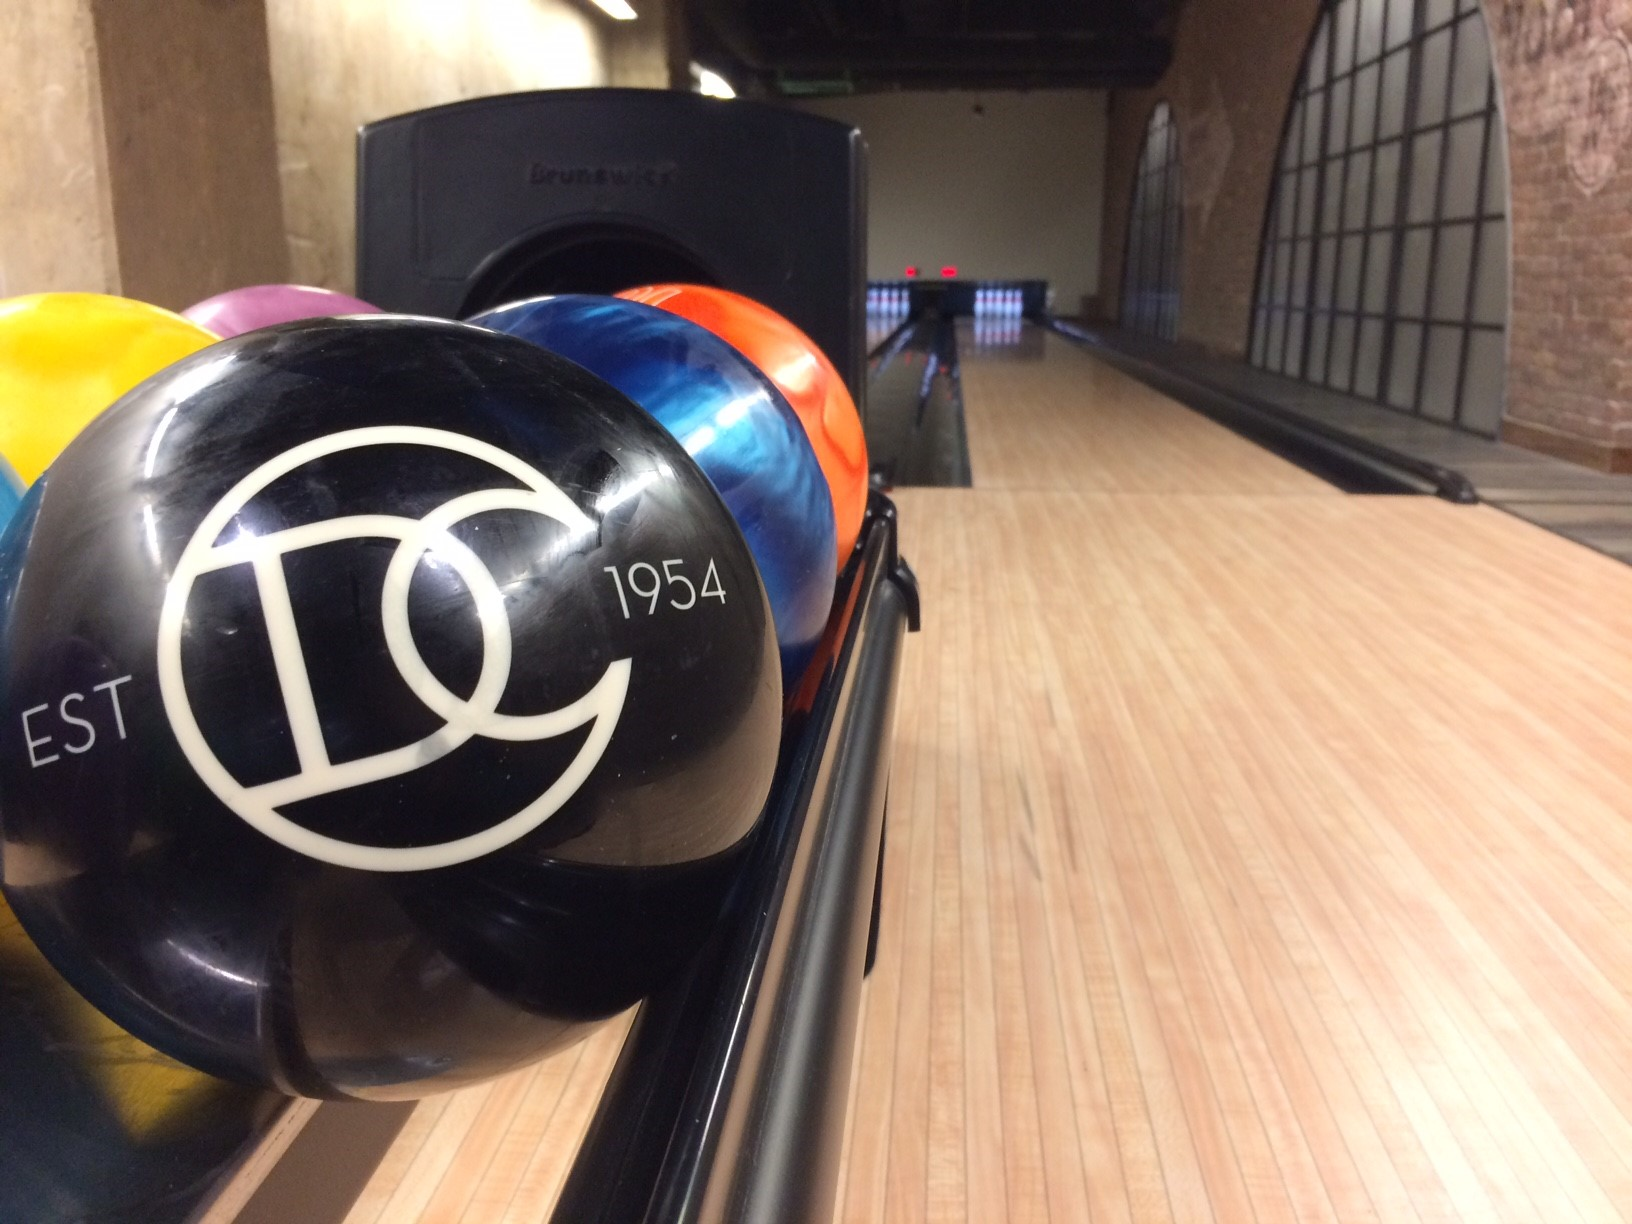 Unico_518-17th-street-dc-building-bowling-alley